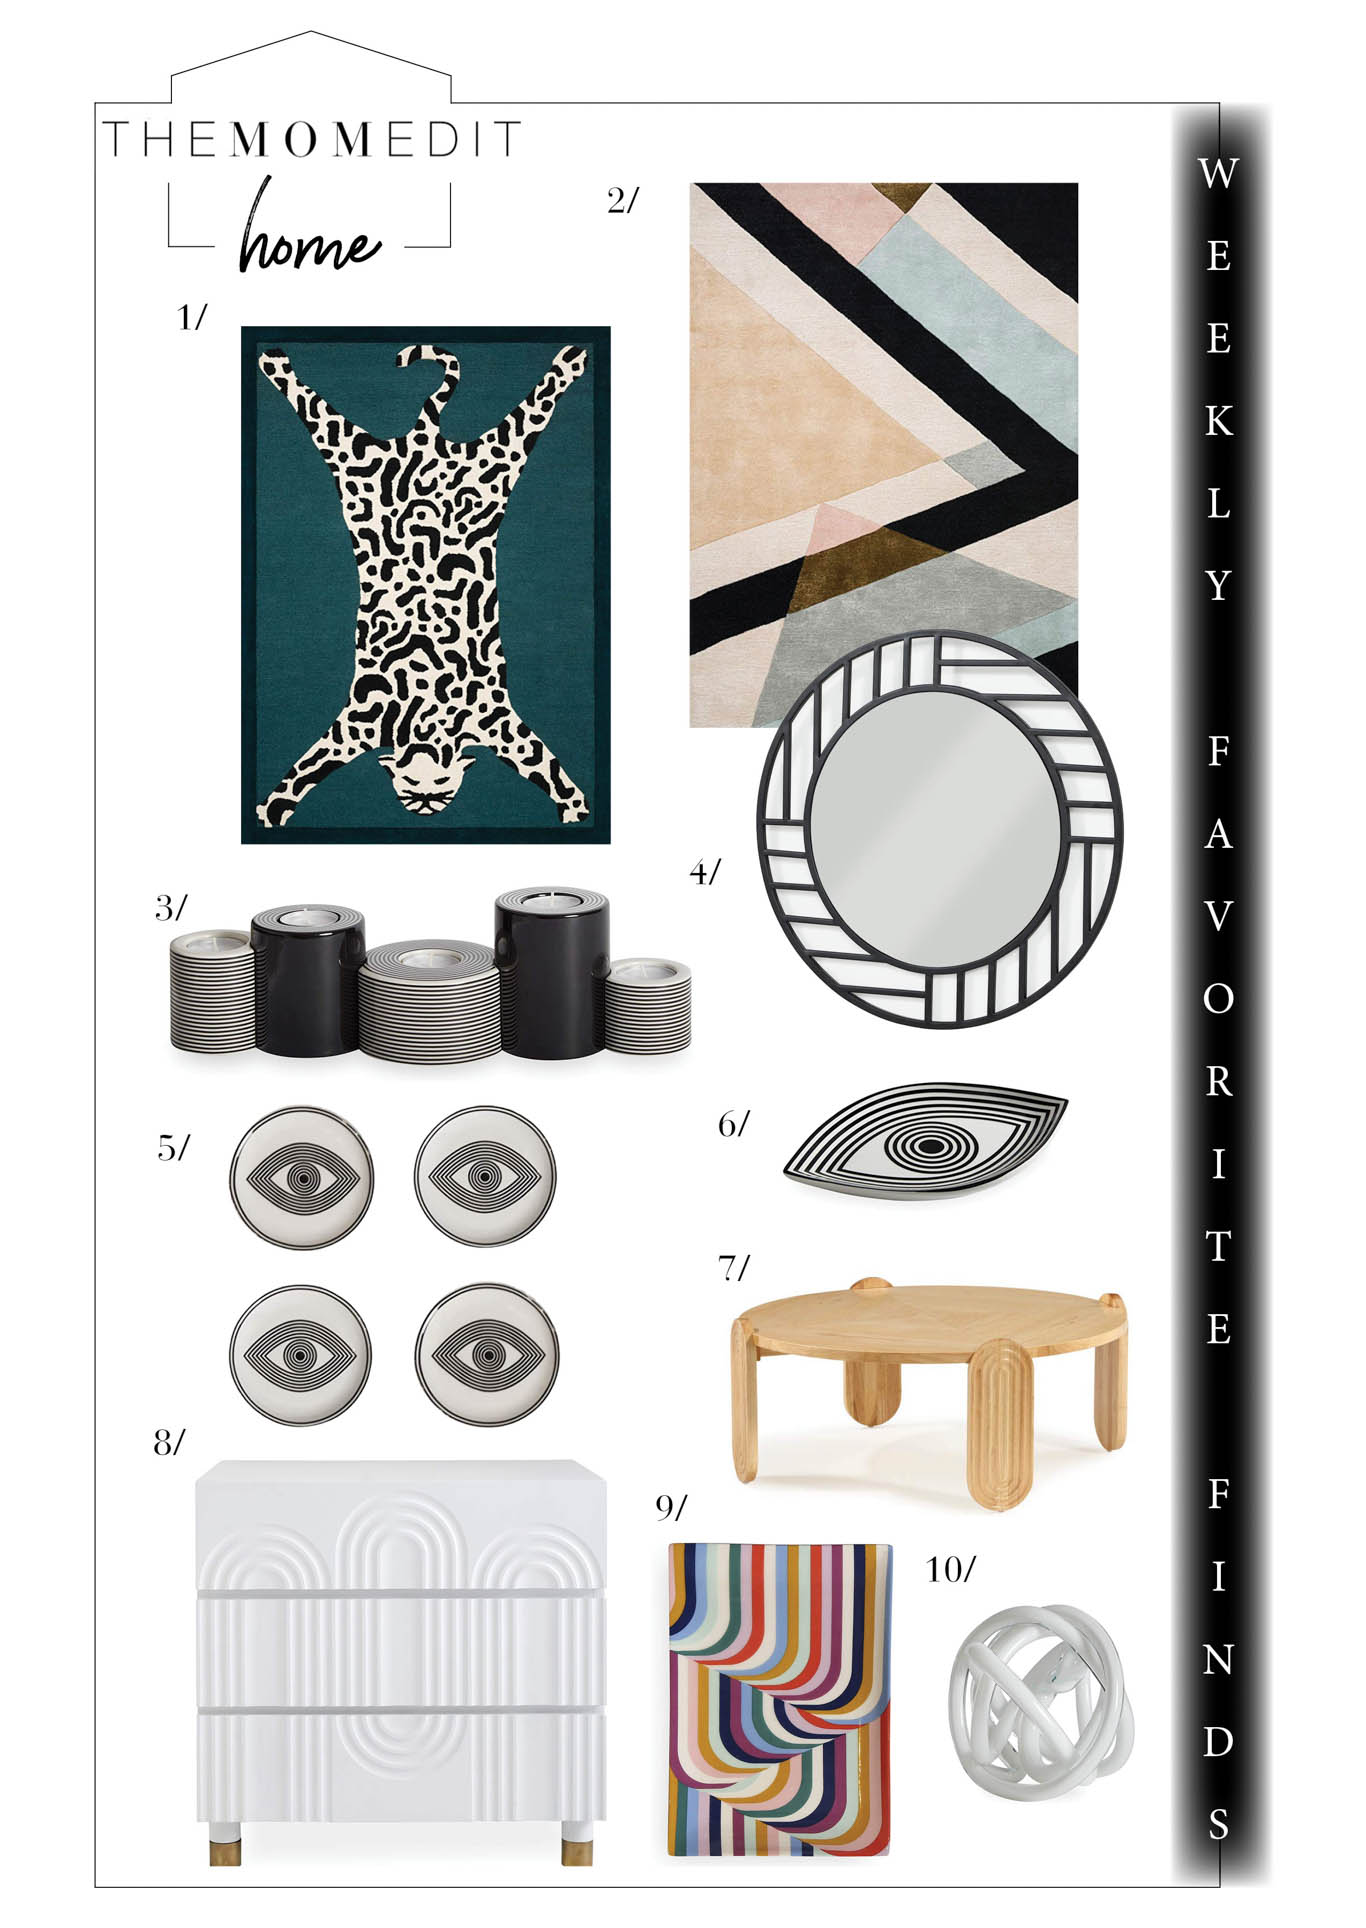 Jonathan Adler is fun — like Leap Year Fun! And NOW he has a great new collection available through Amazon, Now House. That + all the home decor, on sale.